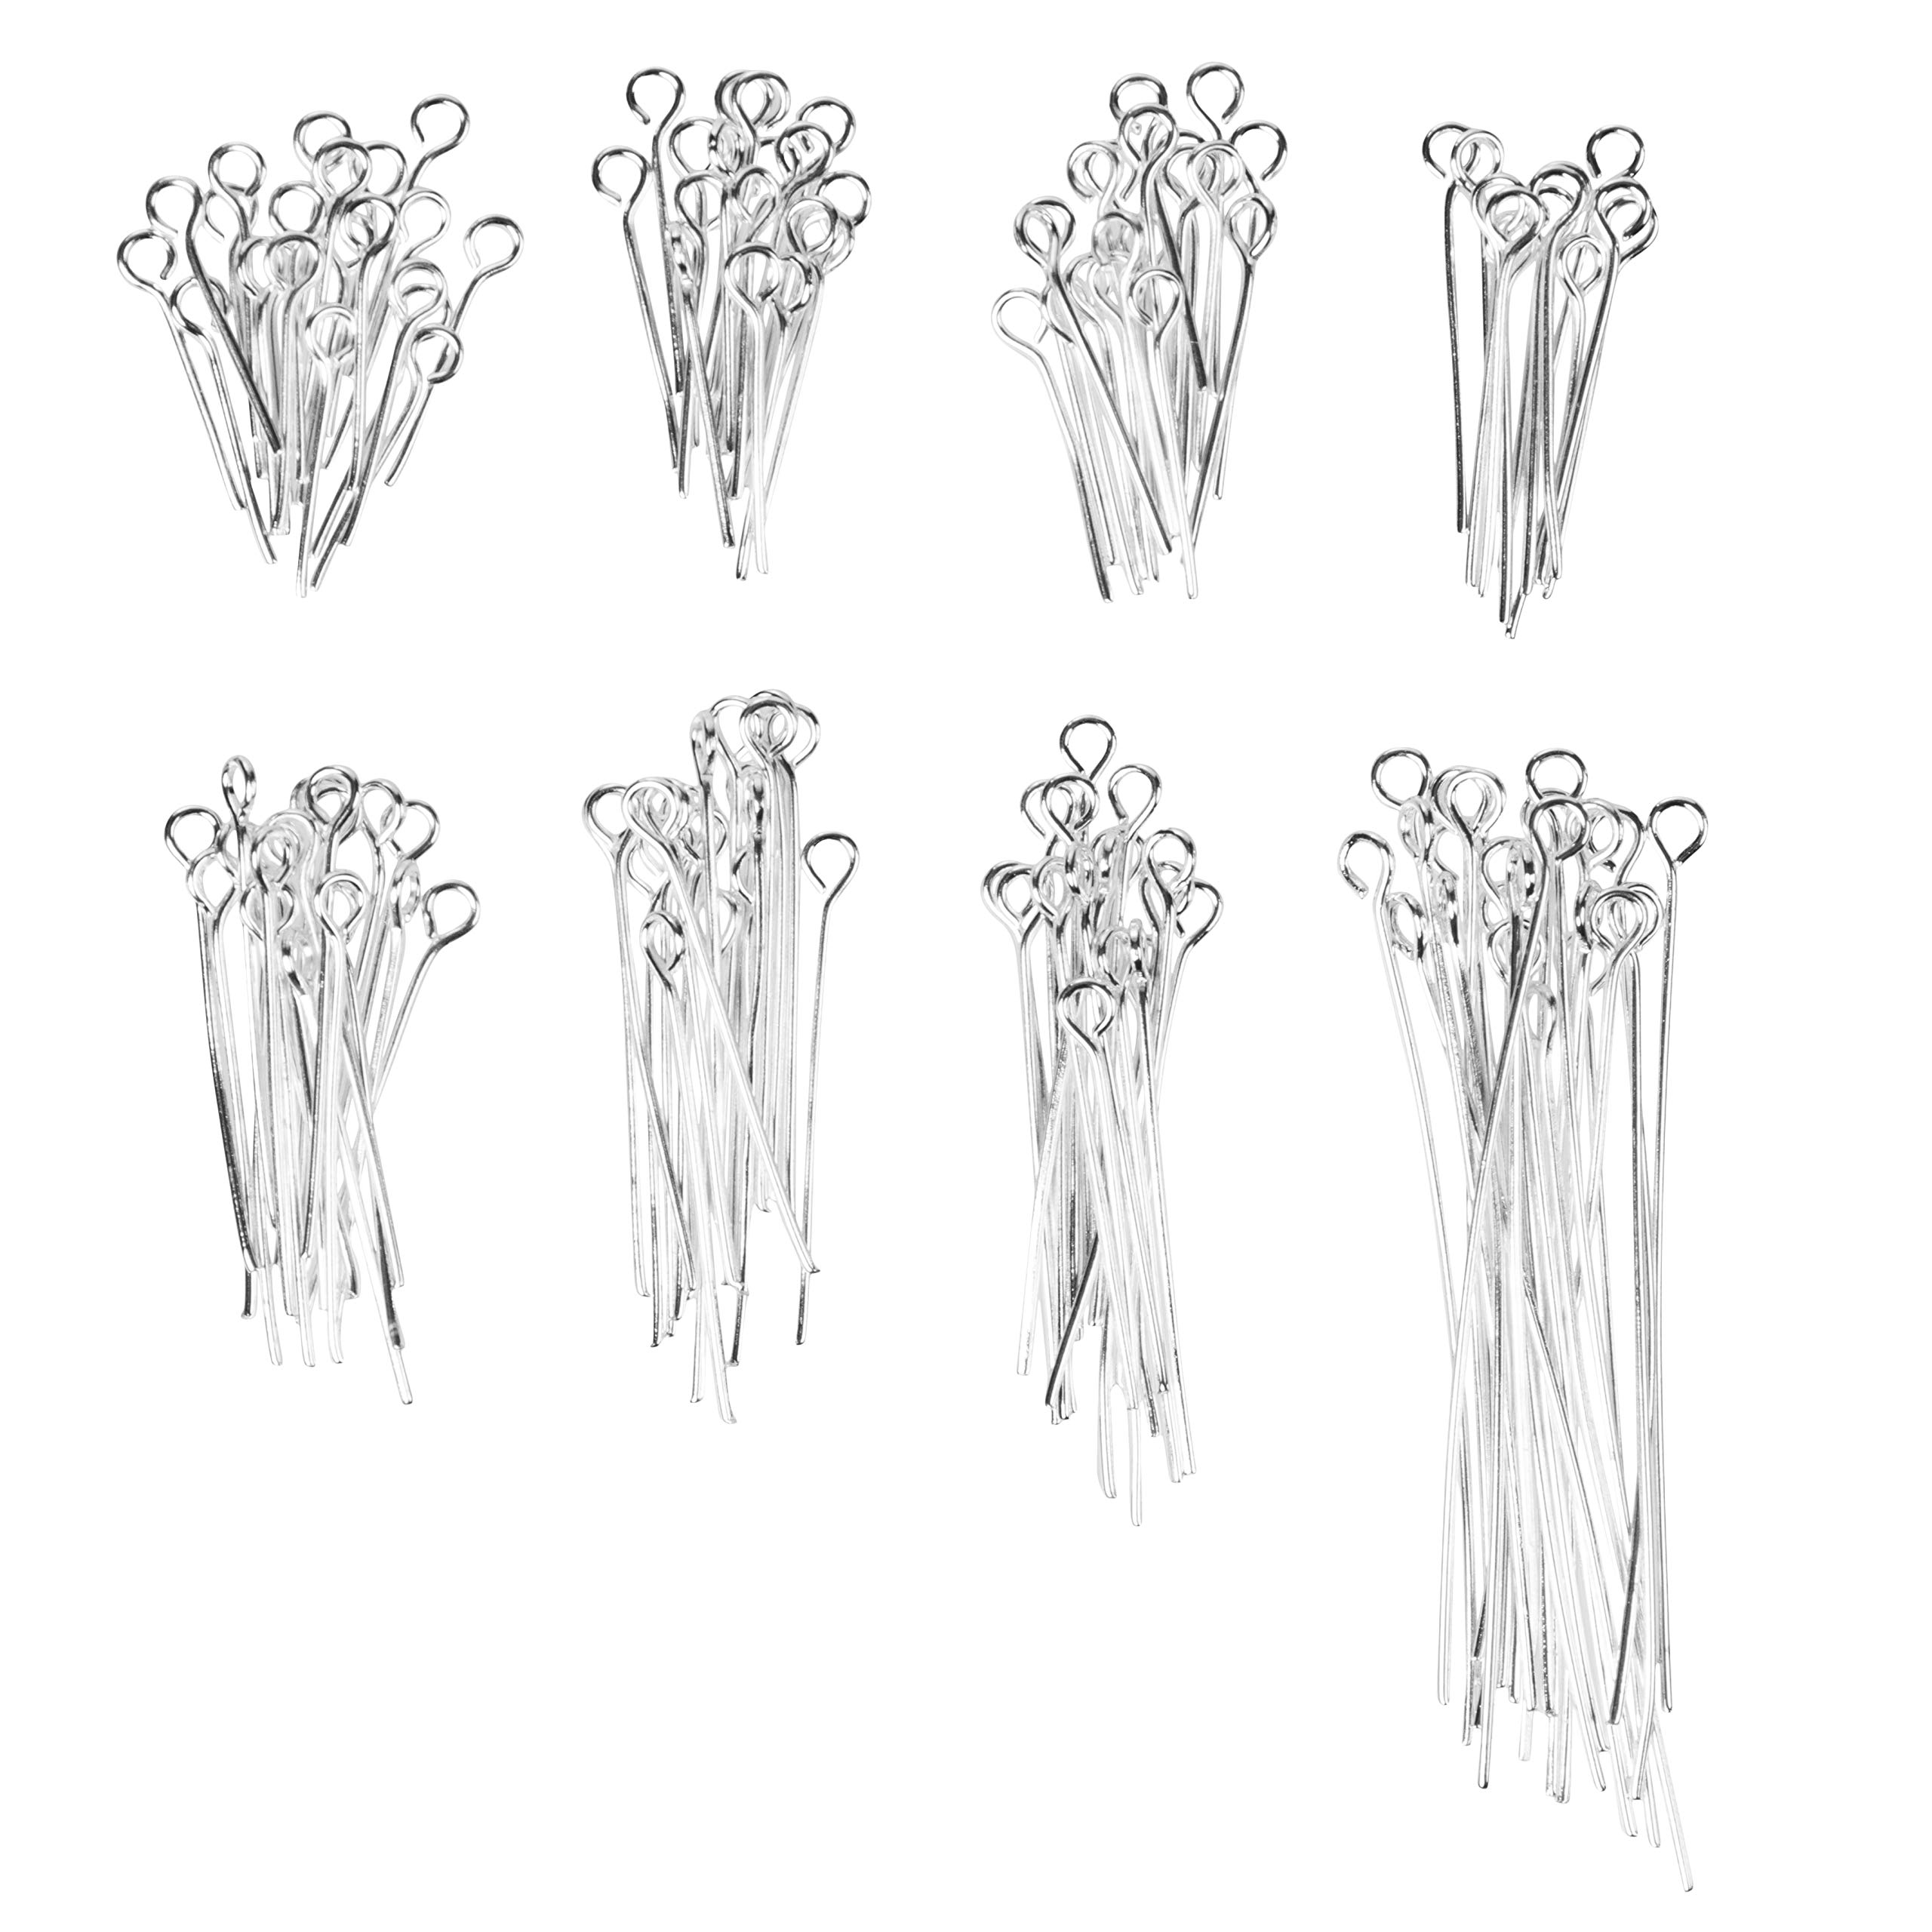 Eye Pins for Jewelry Making - 1200-Piece Jewelry Eye Pins, 20-Gauge Jewelry Findings Eye Pins DIY Jewelry Making Supplies, 8 Different Lengths, 150 of Each, 0.63-1.97 Inches, 0.09 Inch Hoop